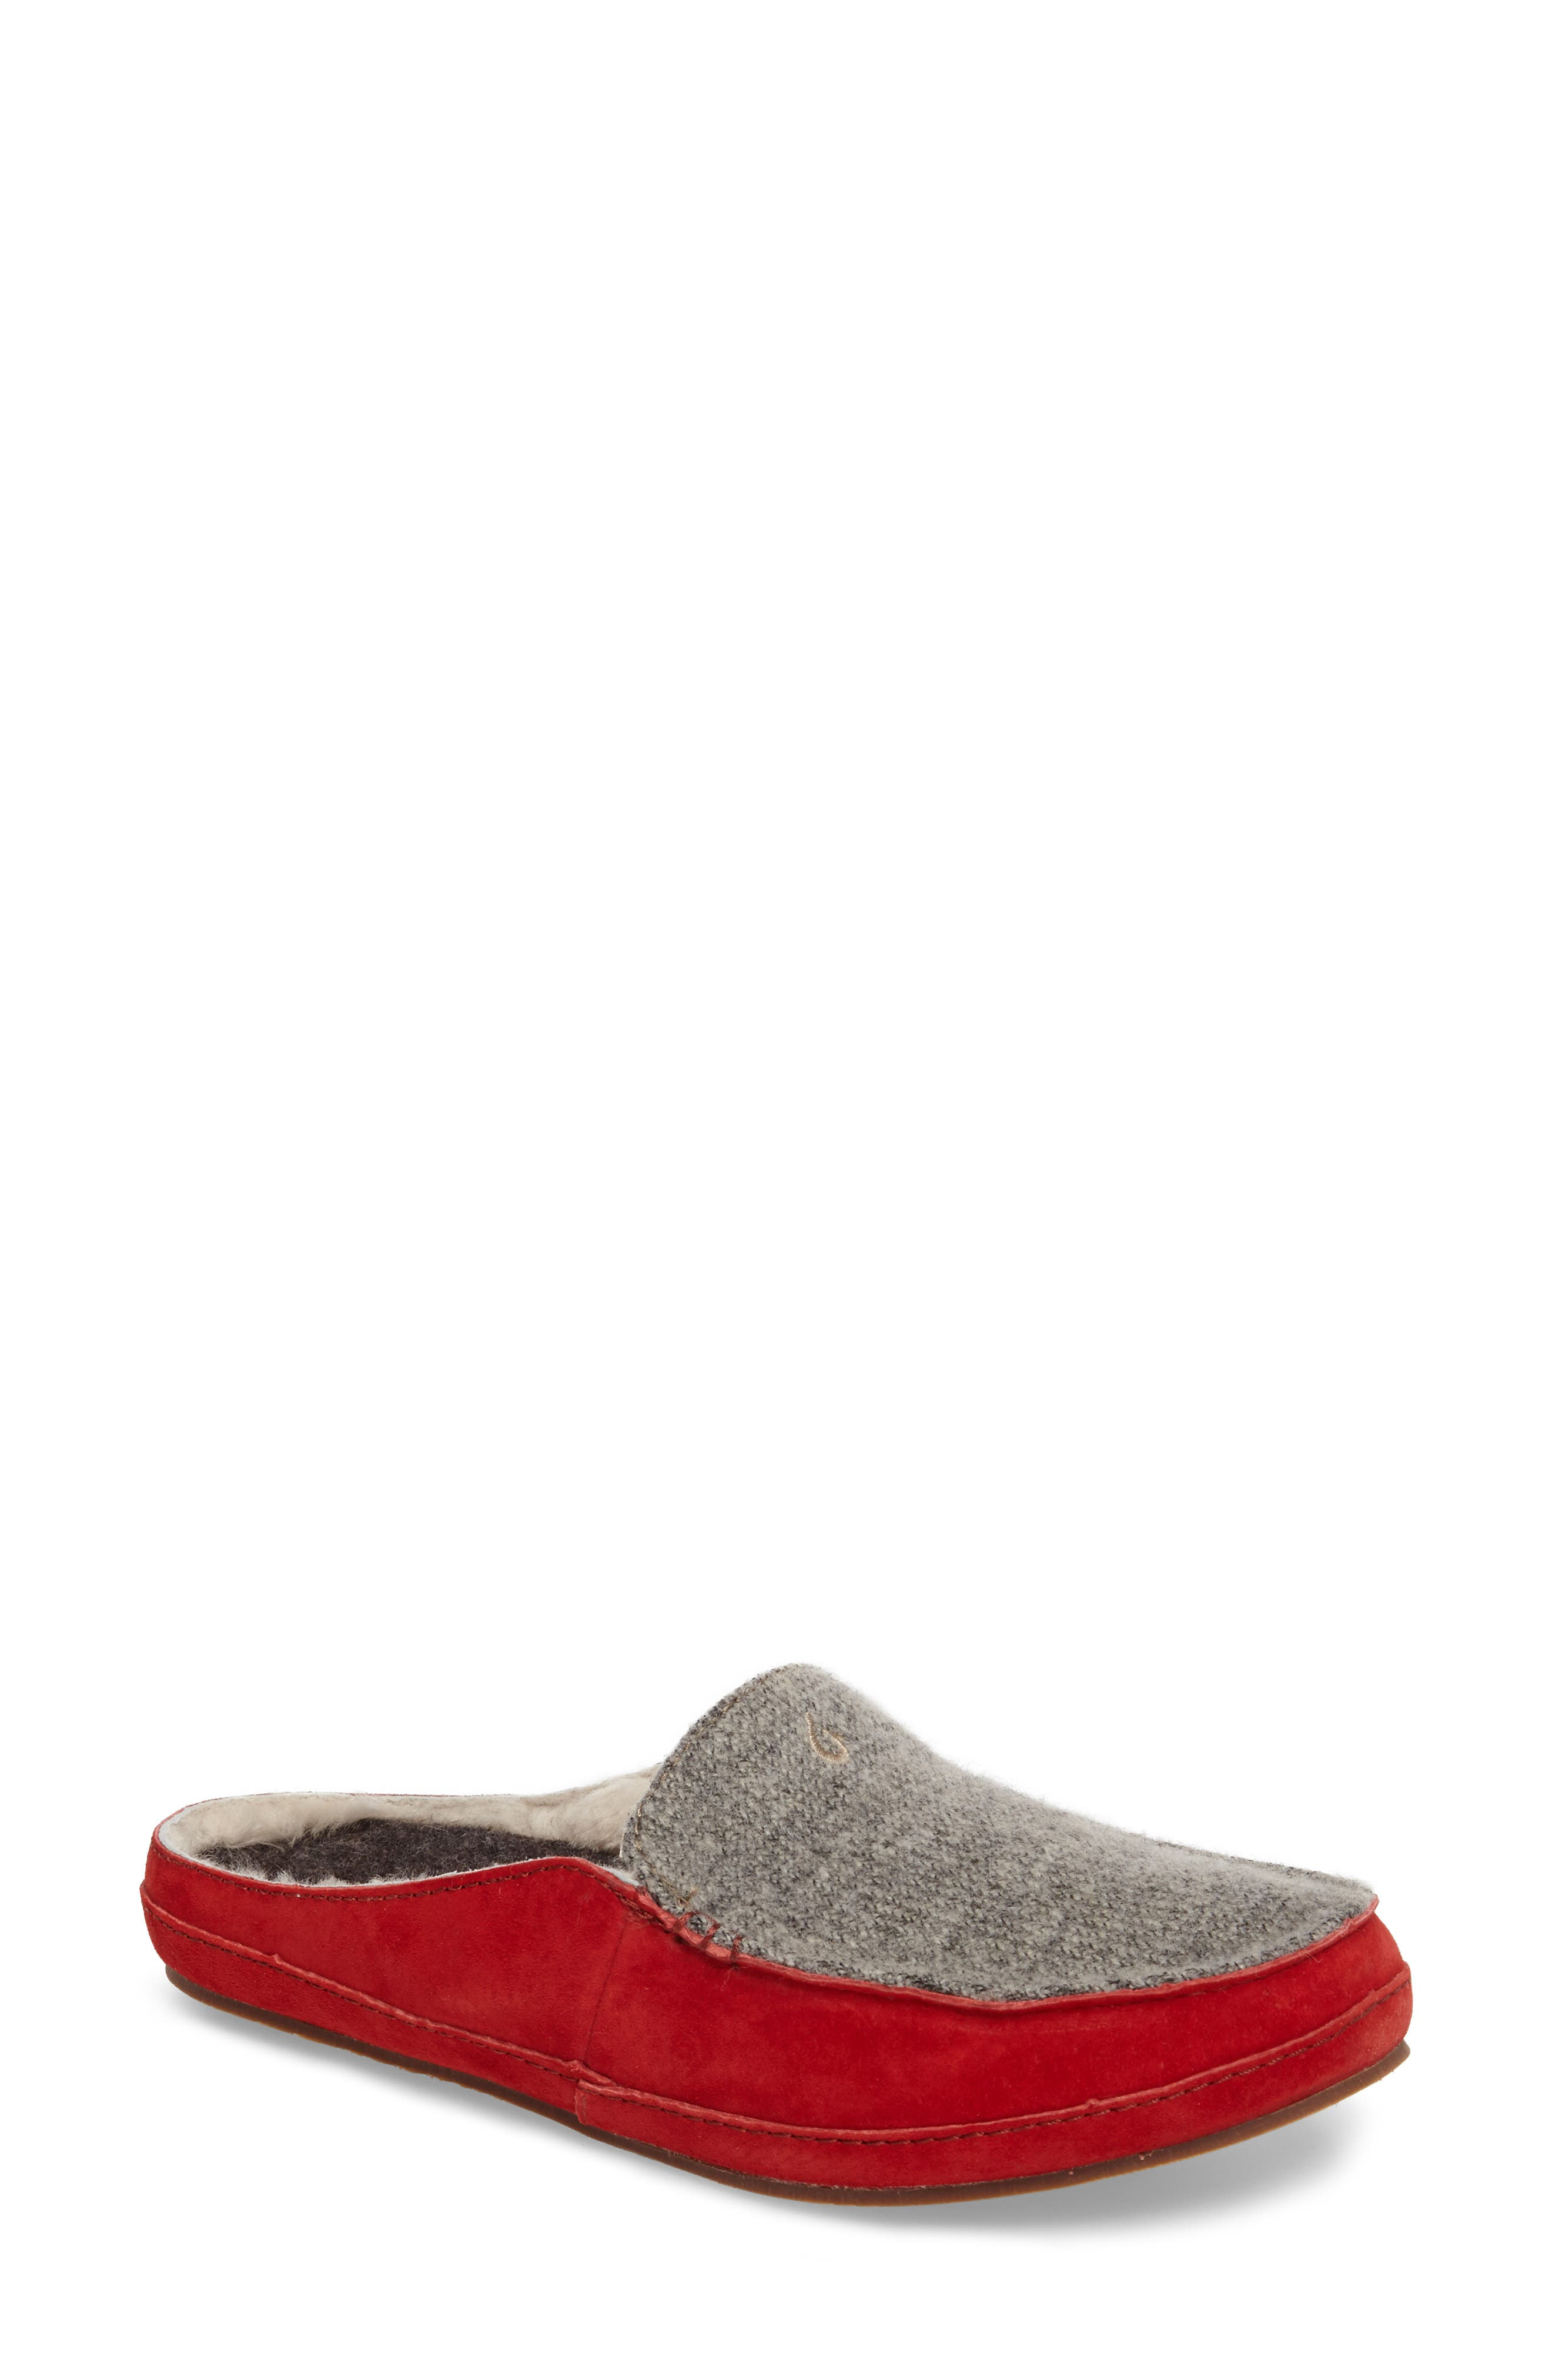 Alaula Genuine Shearling Lined Slipper,                         Main,                         color, Cooler Grey/ Red Mud Leather